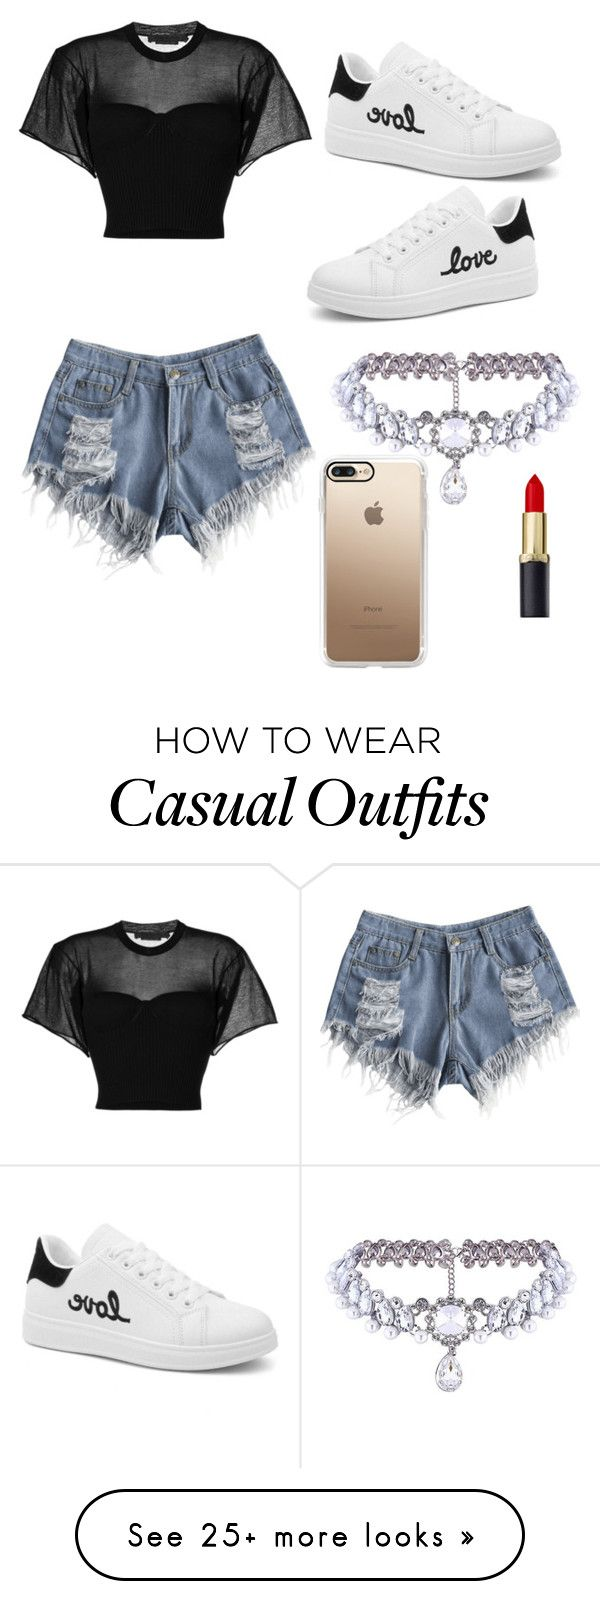 """Casual late night dinner"" by alyssa-ricker on Polyvore featuring Alexander Wang, WithChic, Casetify, gucci and polyvorefashion"